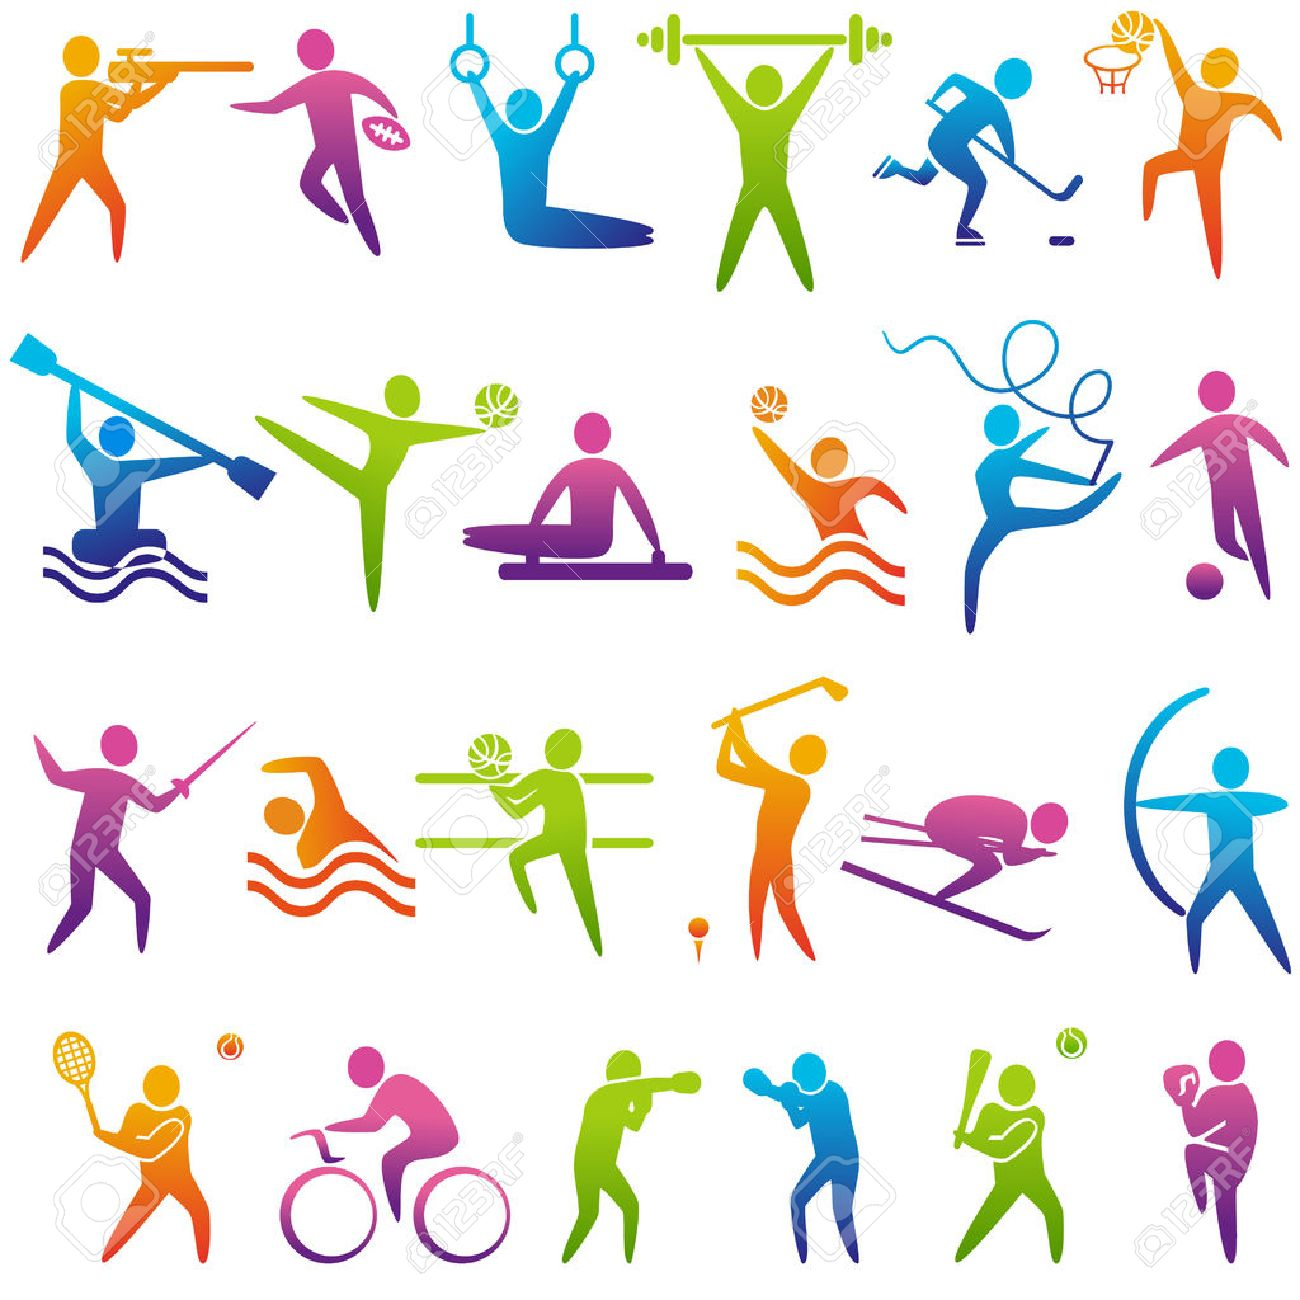 Set of sports icons: basketball, soccer, hockey, tennis, skiing, boxing, wrestling, cycling, golf, baseball, gymnastics, shooting, rugby, gymnastics, American football, power lifting, kayaking, canoeing, barbell, weightlifting, water polo, archery, fencing, swimming, volleyball, sports competitions. Vector illustration - 46372920